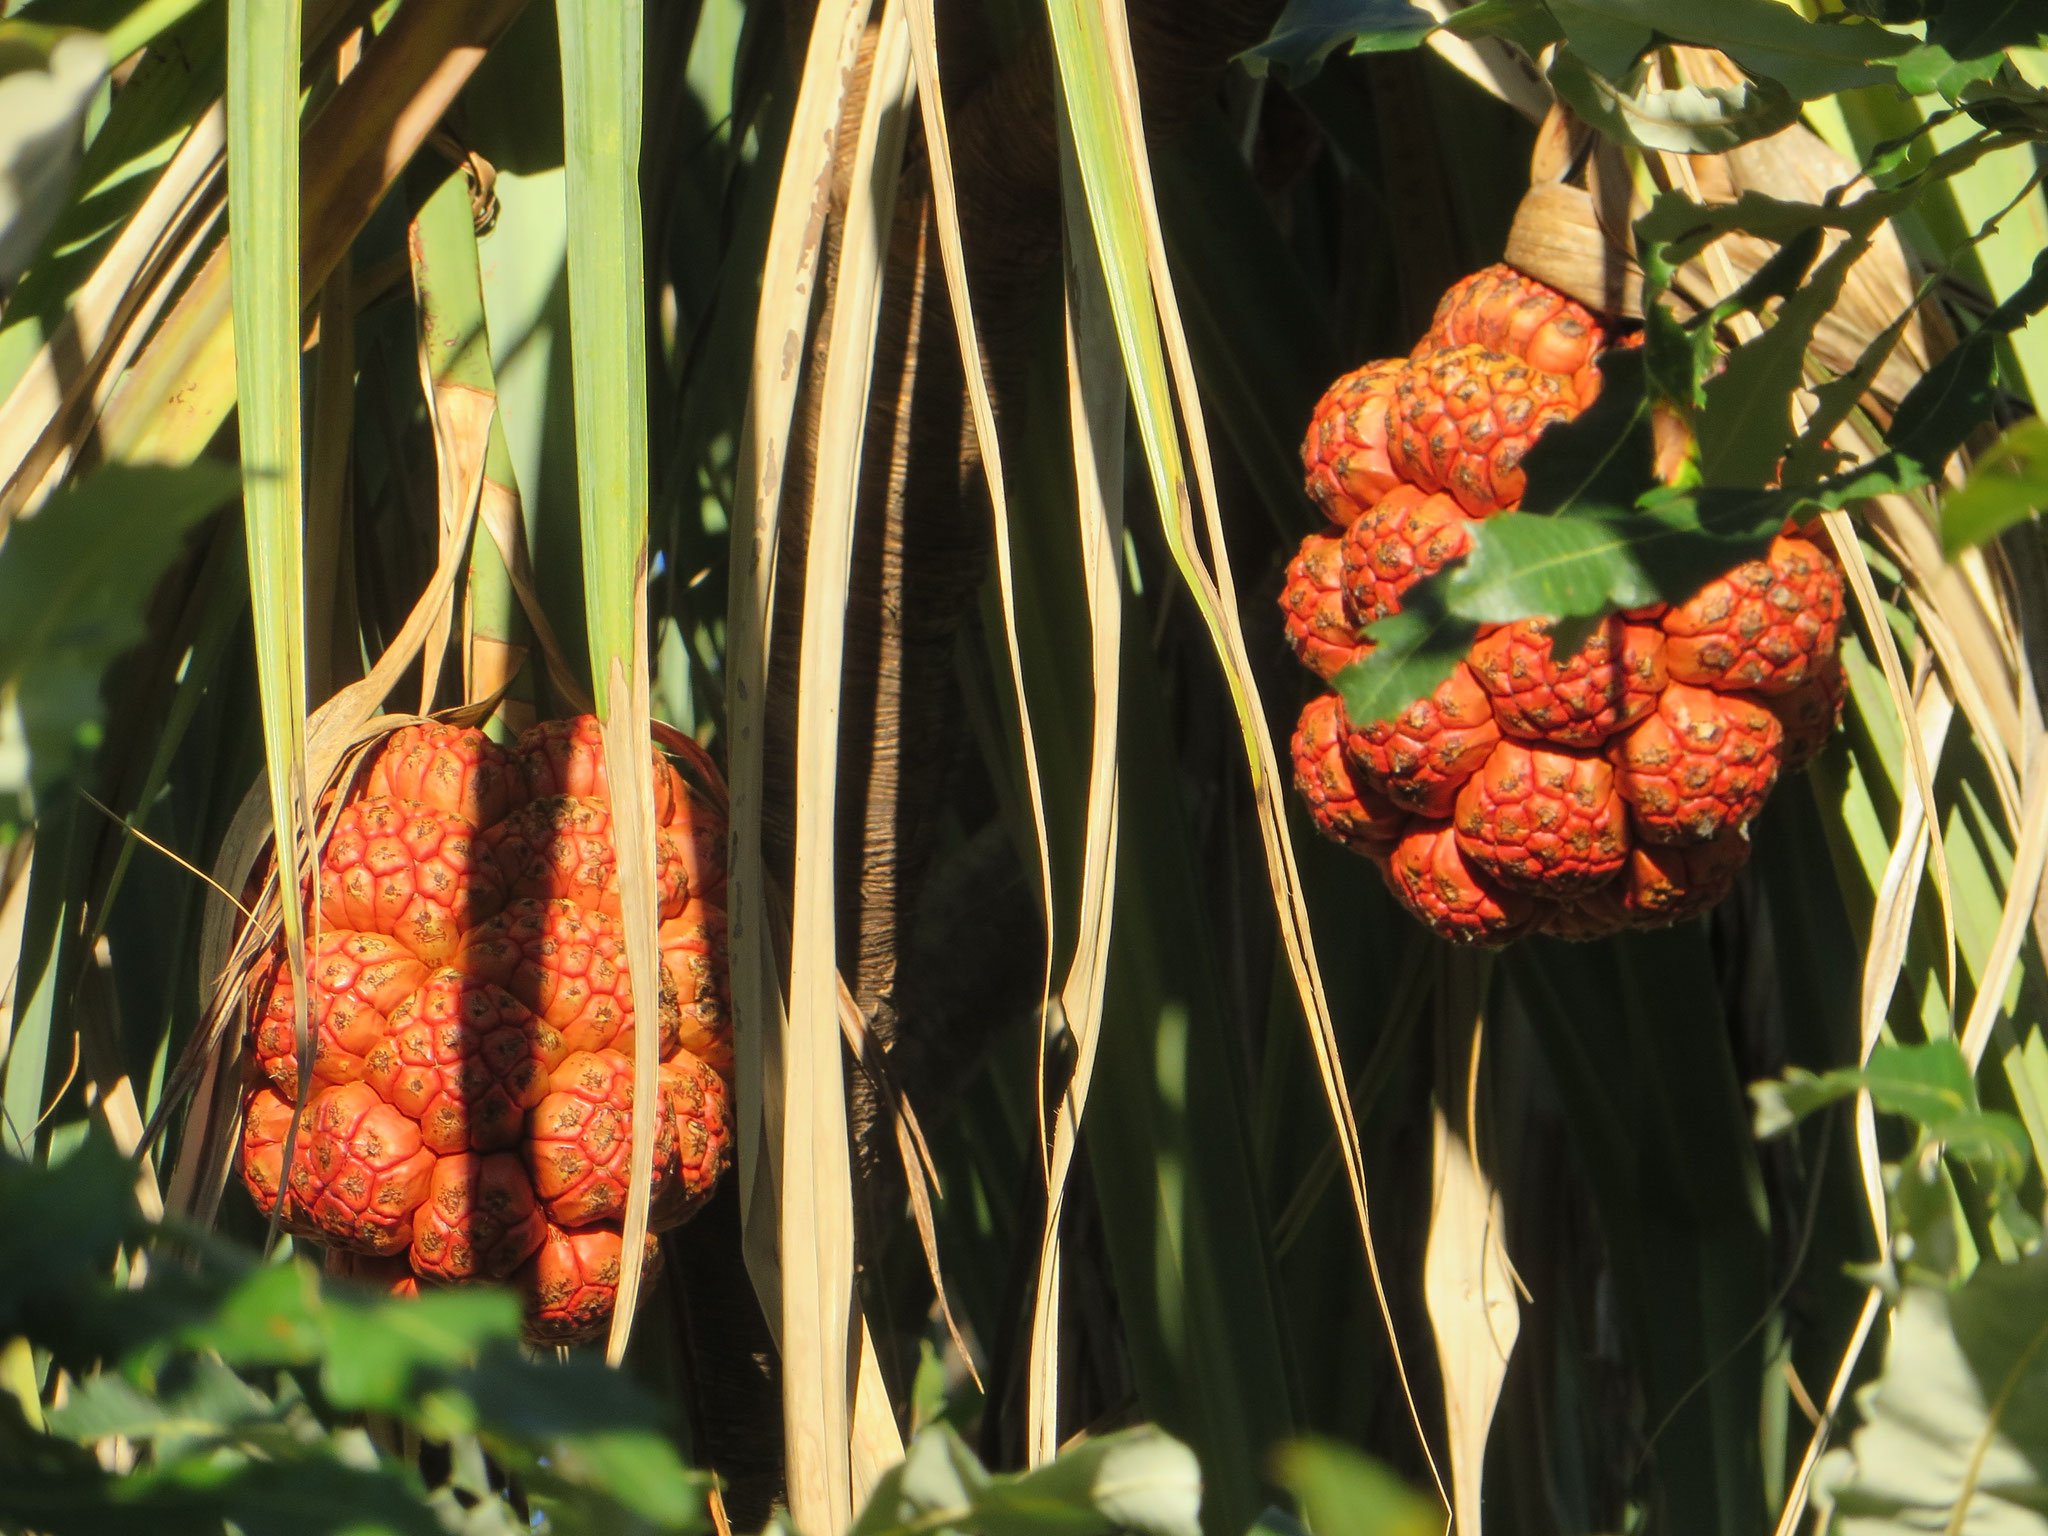 Pandanus fruit ripens from green to orange and red